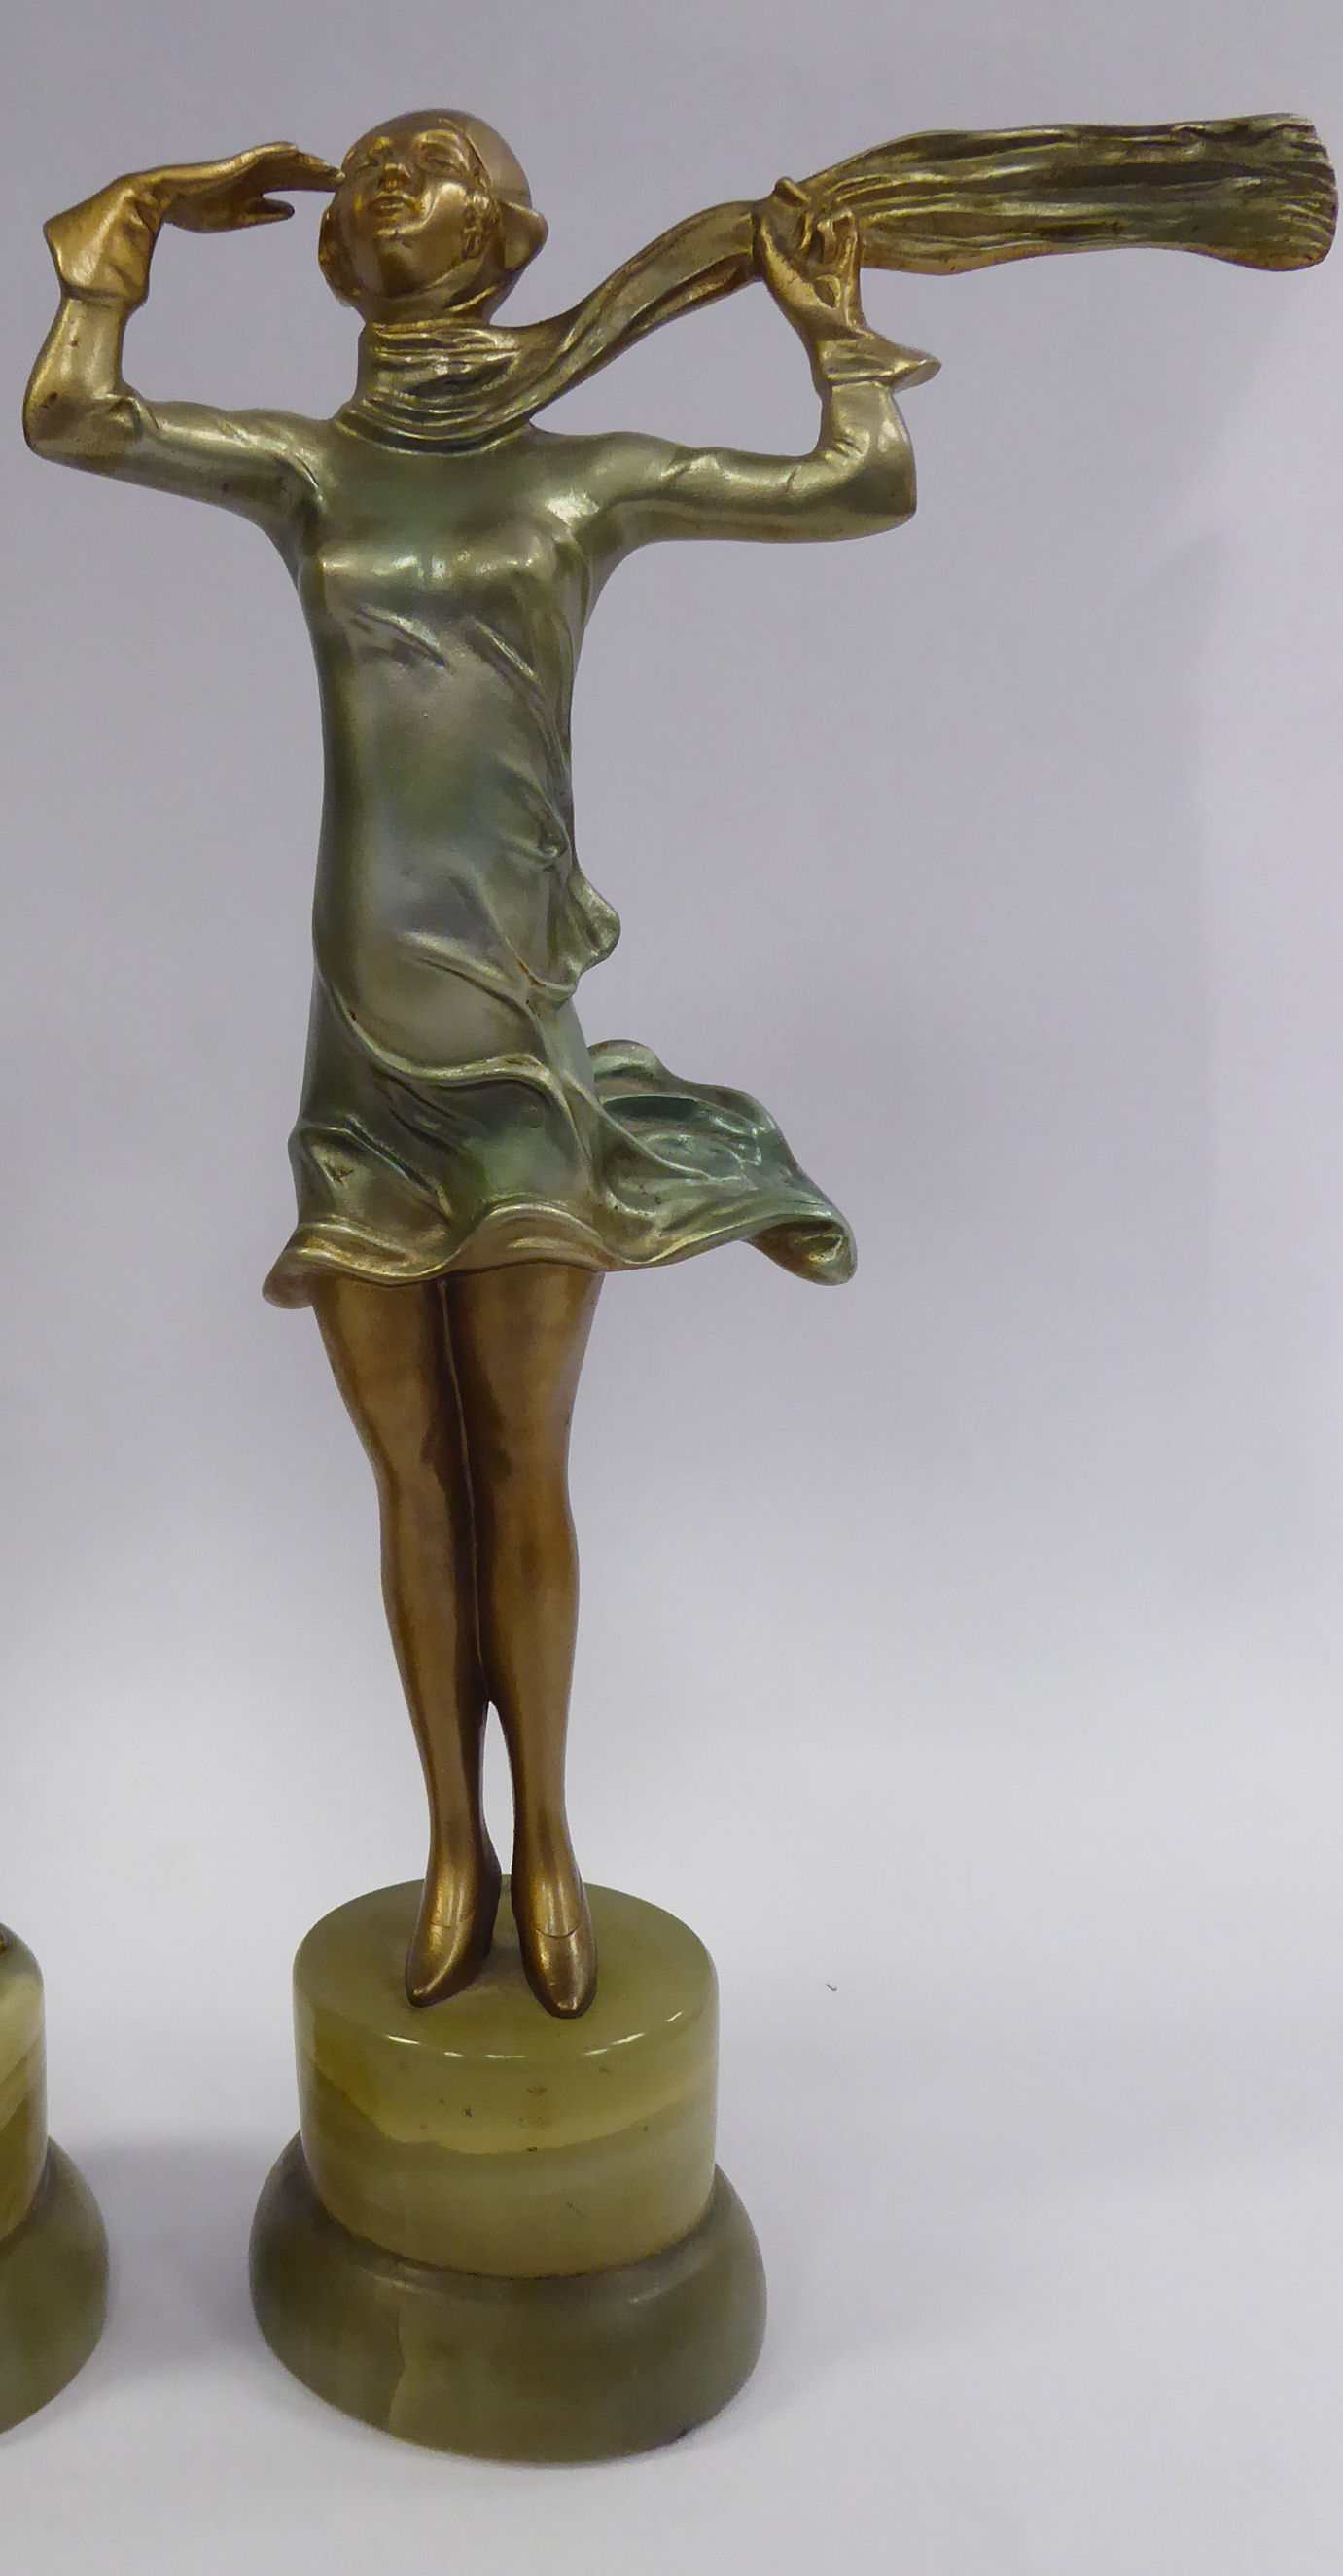 Lot 55 - A late 1920s/early 1930s painted cold cast figure, a fashionable young woman,